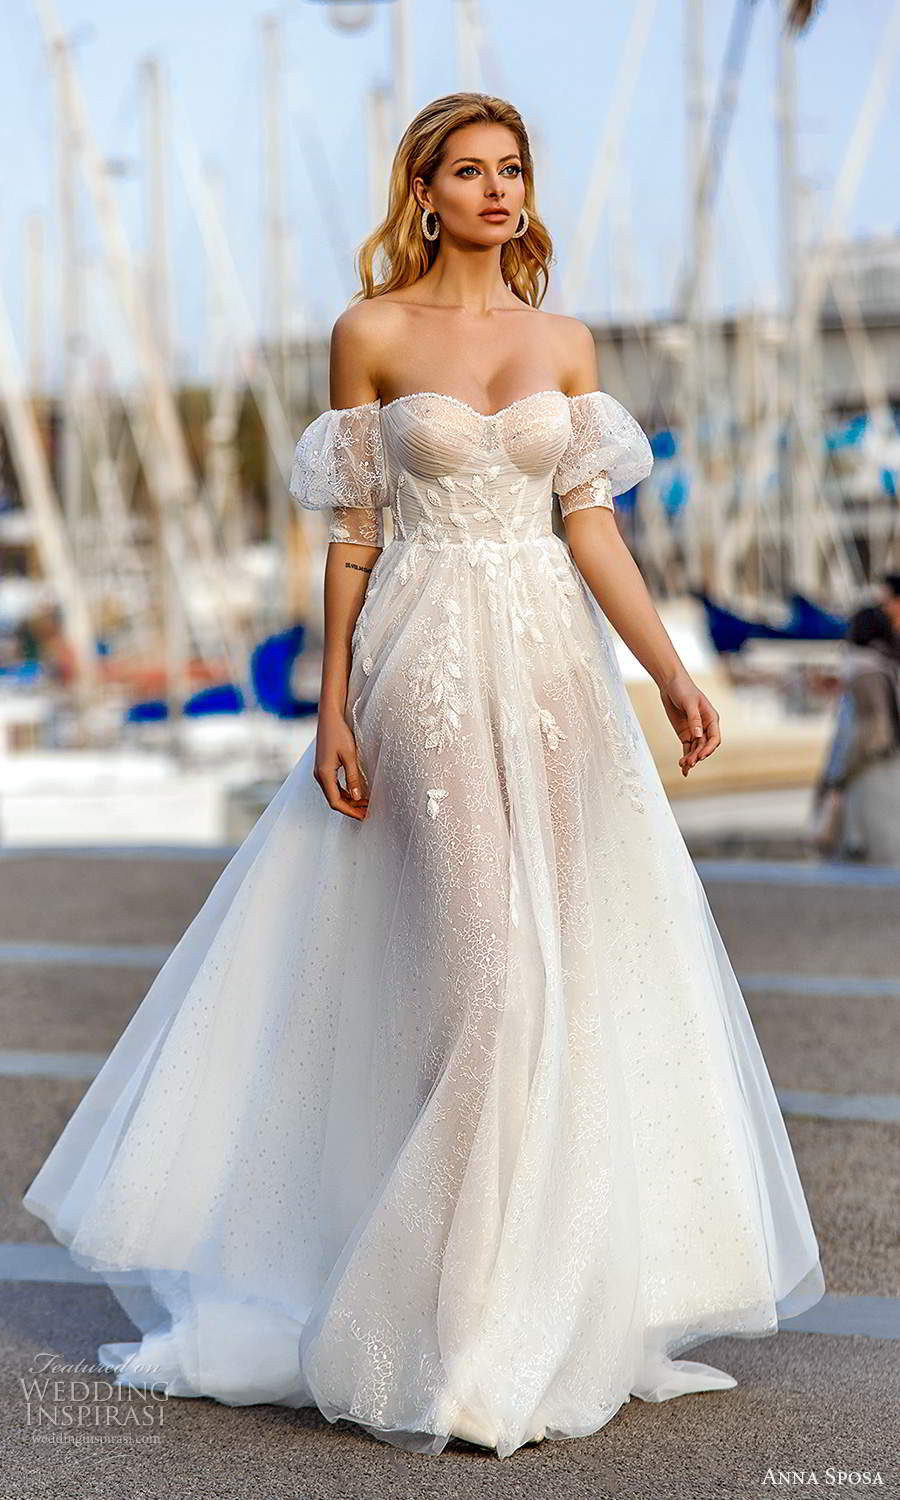 anna sposa 2021 bridal short puff sleeves strapless sweetheart neckline fully embellished a line ball gown wedding dress chapel train (13) mv